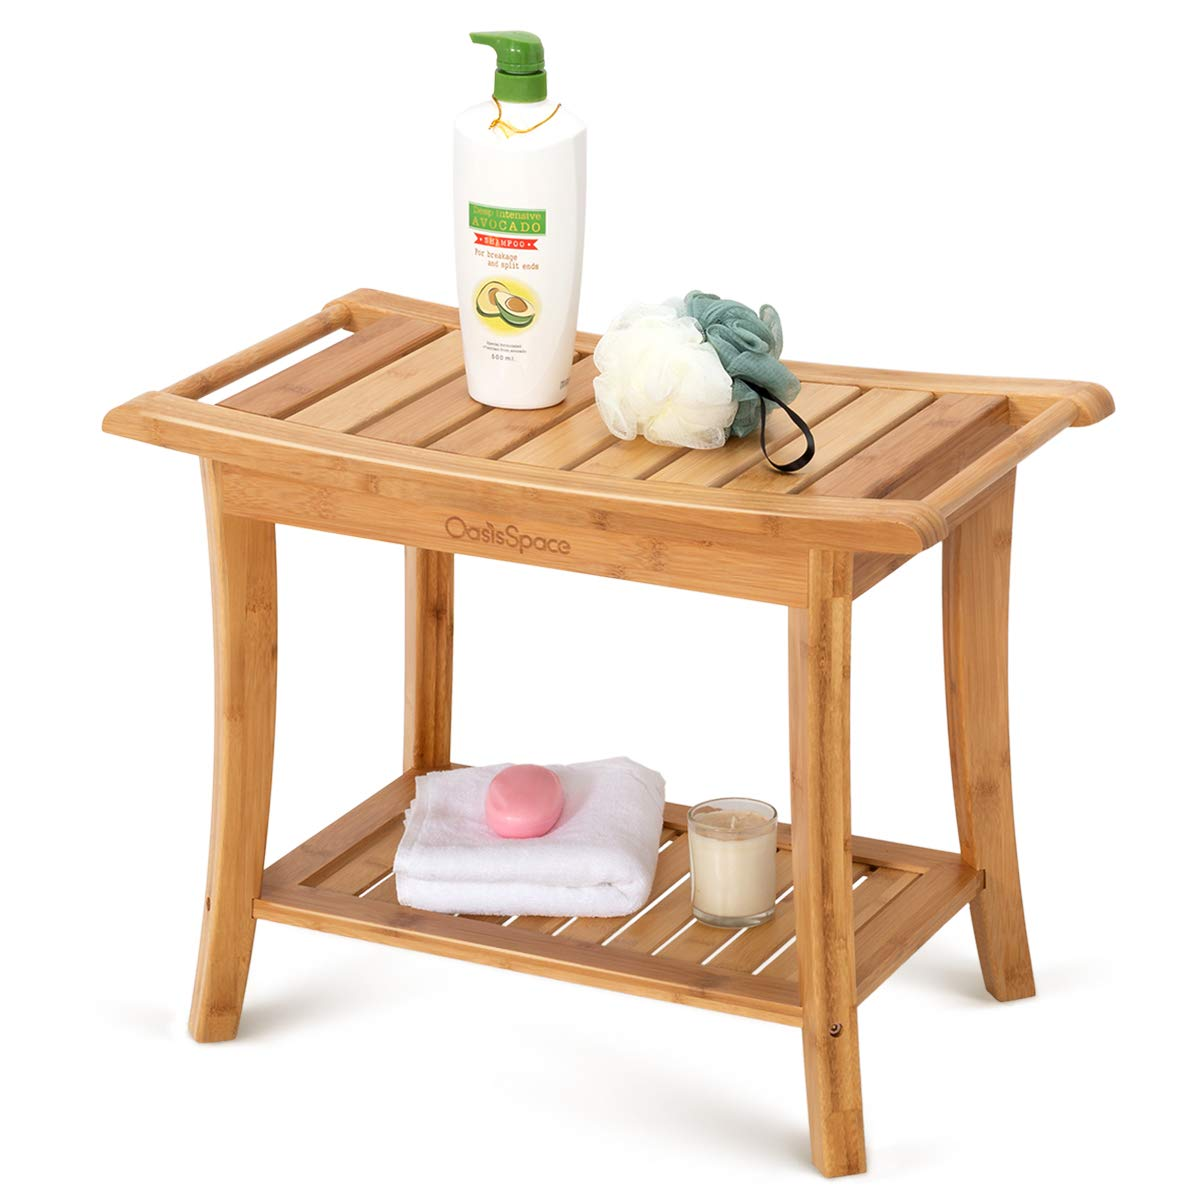 OasisSpace Bamboo Shower Bench, 24'' Waterproof Shower Chair with Storage Shelf, Wood Spa Bath Organizer Seat Stool, Perfect for Indoor or Outdoor by OasisSpace